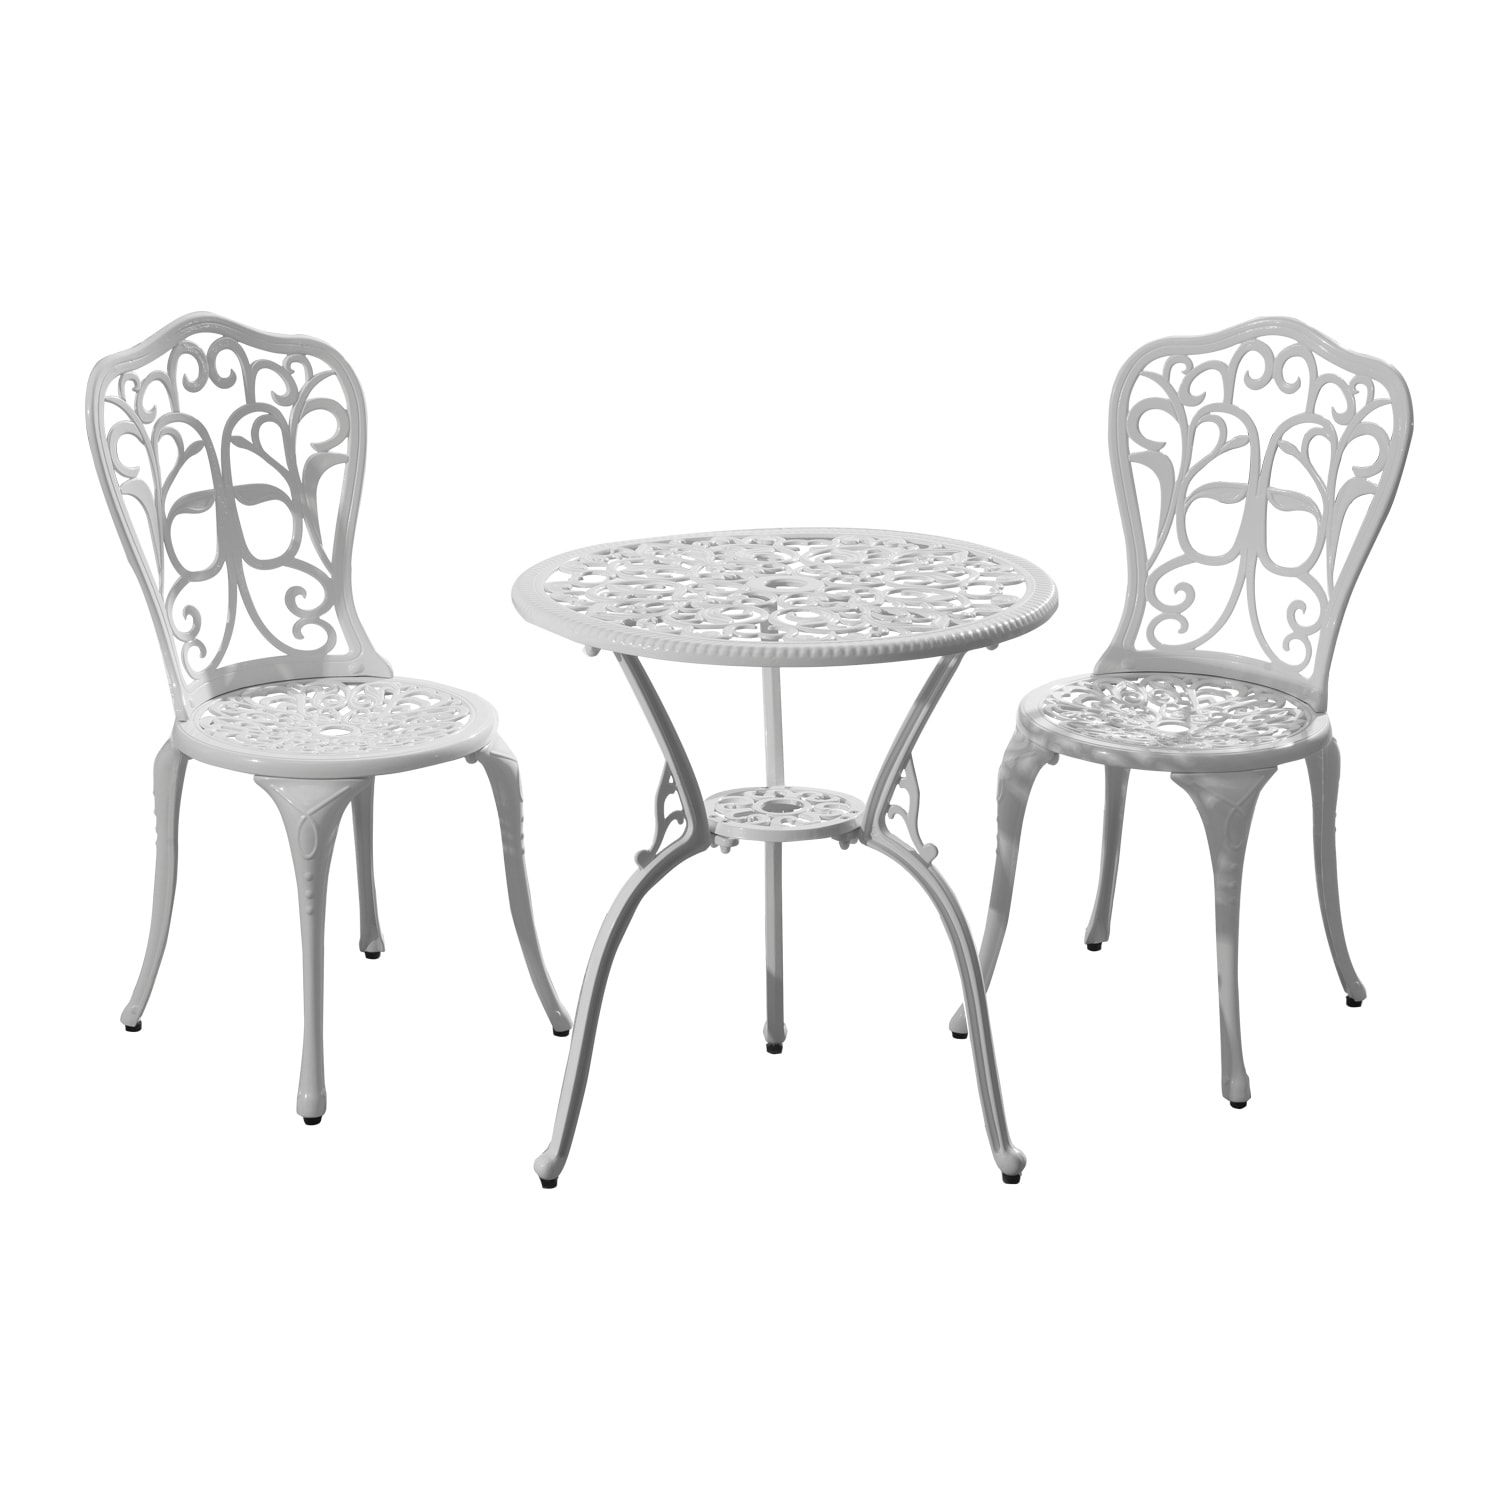 Aosom Outsunny 3pc All-Weather Bistro Outdoor Table and C...